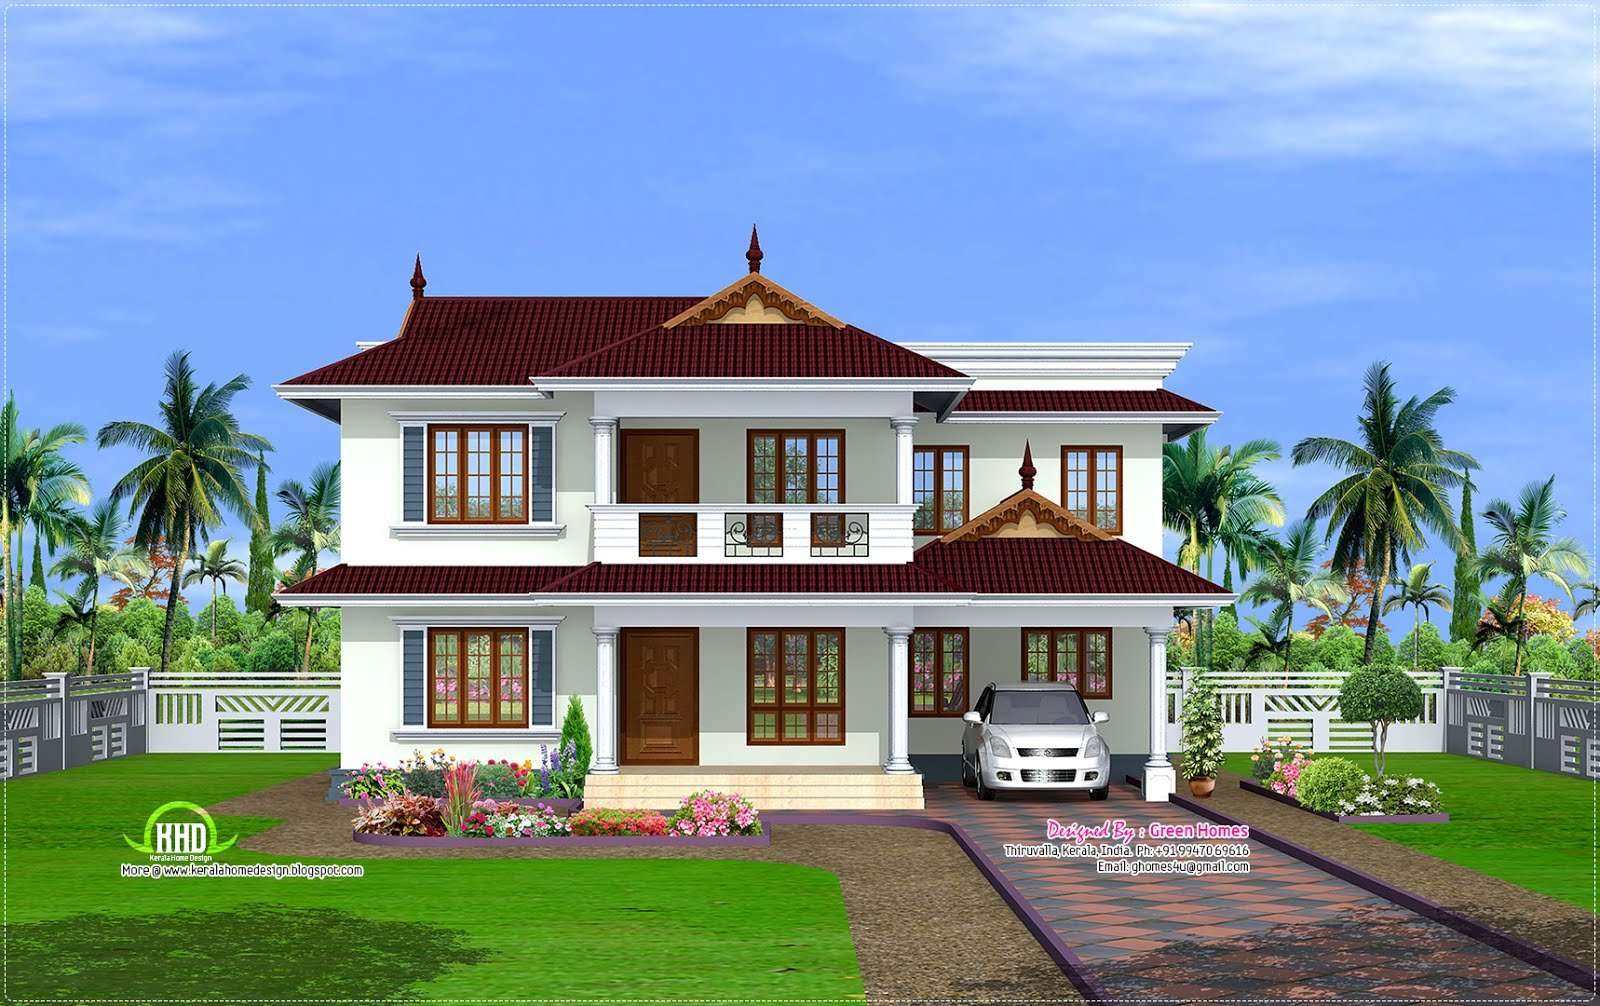 New Model Houses Kerala Photos House Ture Plans 33087